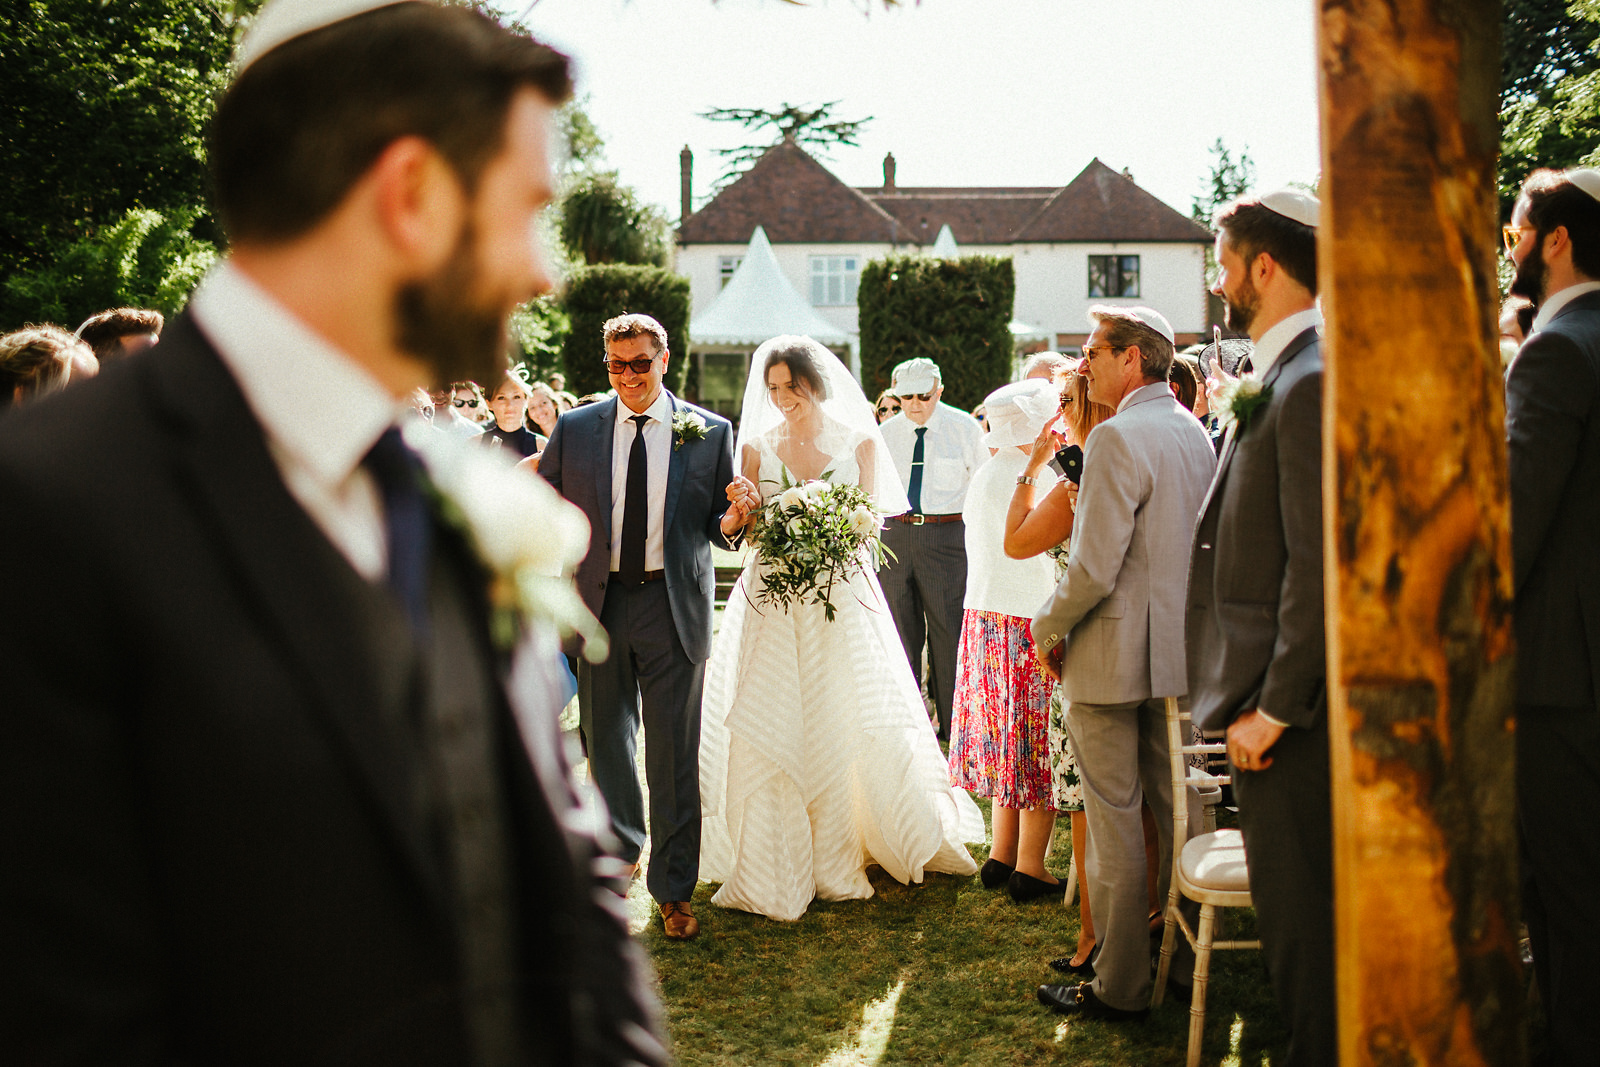 Father of the bride walking down the aisle in summer wedding